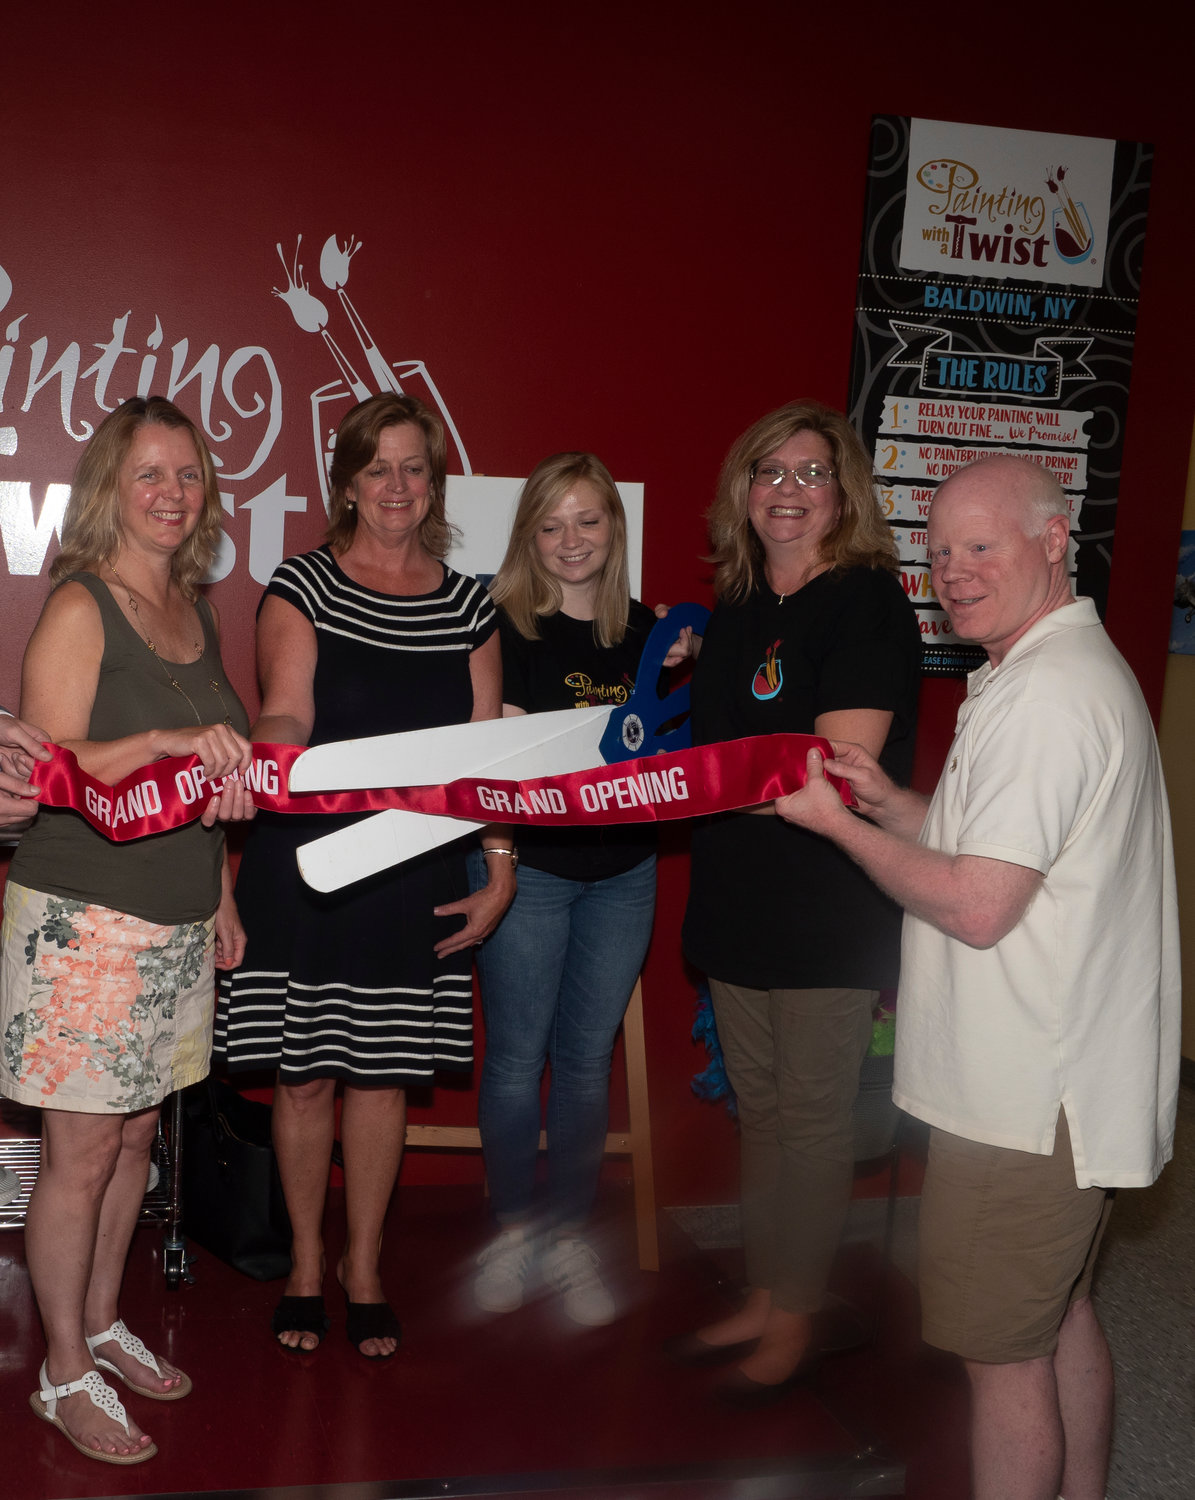 Nassau County Legislator Debra Mule, left, State Assemblywoman Judy Griffin, Katherine Bove, store manager, Joanne Bove, store owner, and Michael Leake, Baldwin Chamber of Commerce board member, cut the ribbon to mark the opening of Painting with a Twist on July 17.